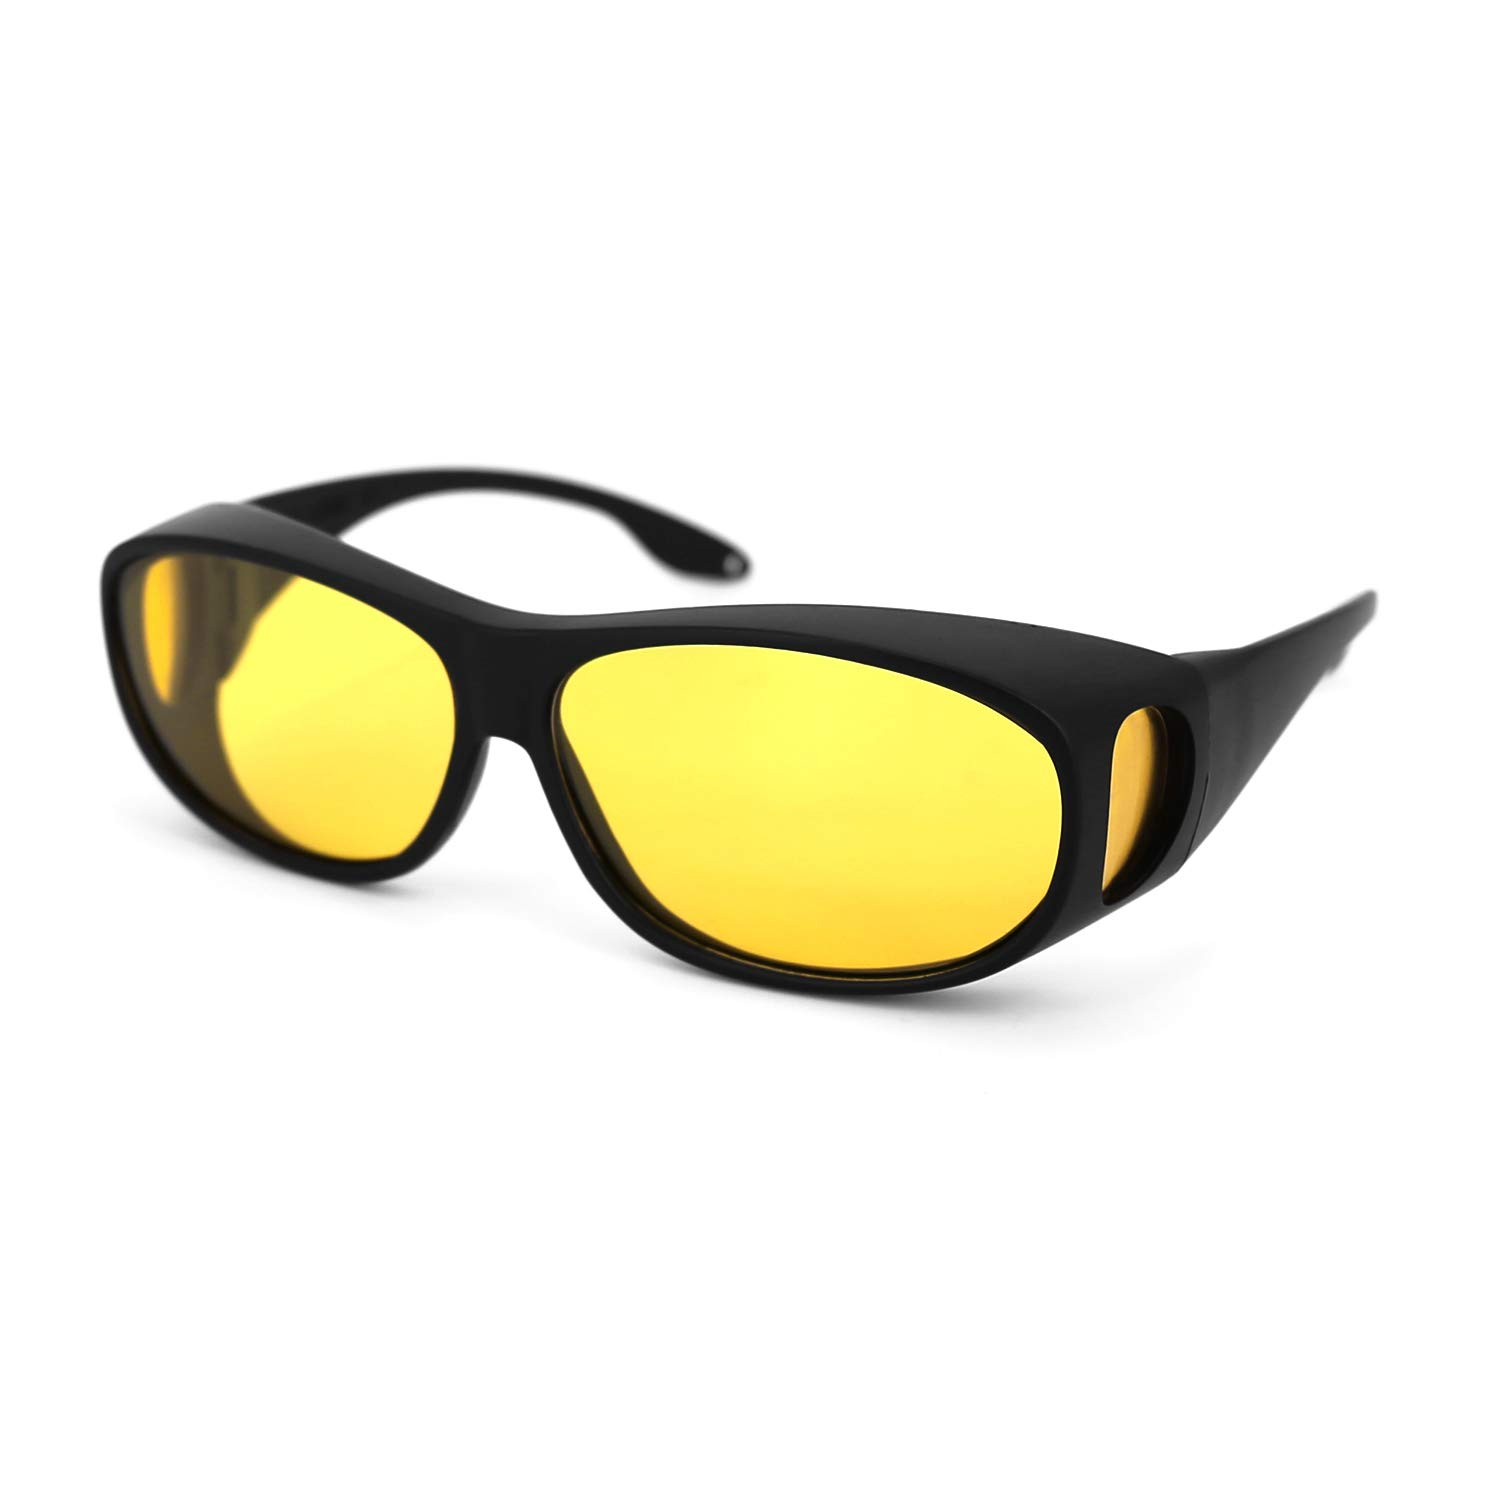 Driving Glasses Vision Polarized Yellow